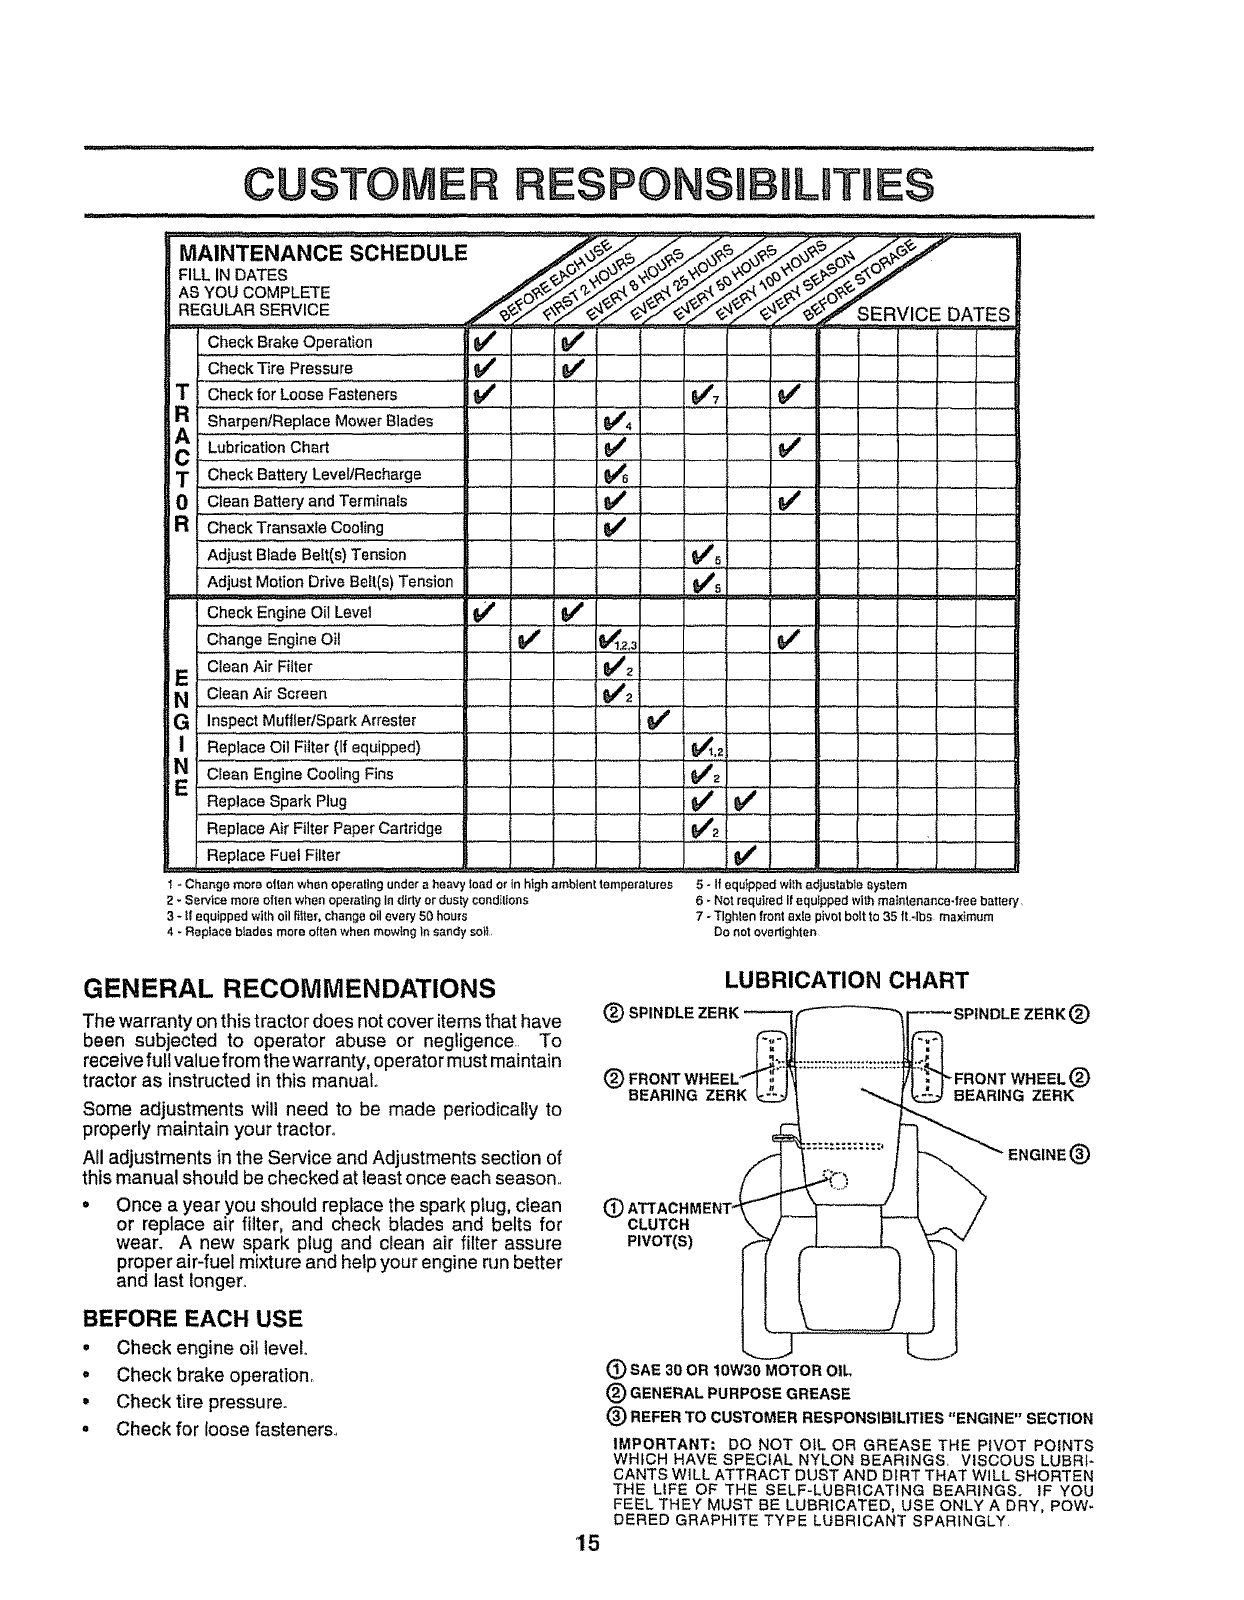 Craftsman 917257562 User Manual Tractor Manuals And Guides 1007794l The Zinc Carbon Dry Cell Or Battery Shown In A Cutaway Diagram Is Customer Responsibilittites